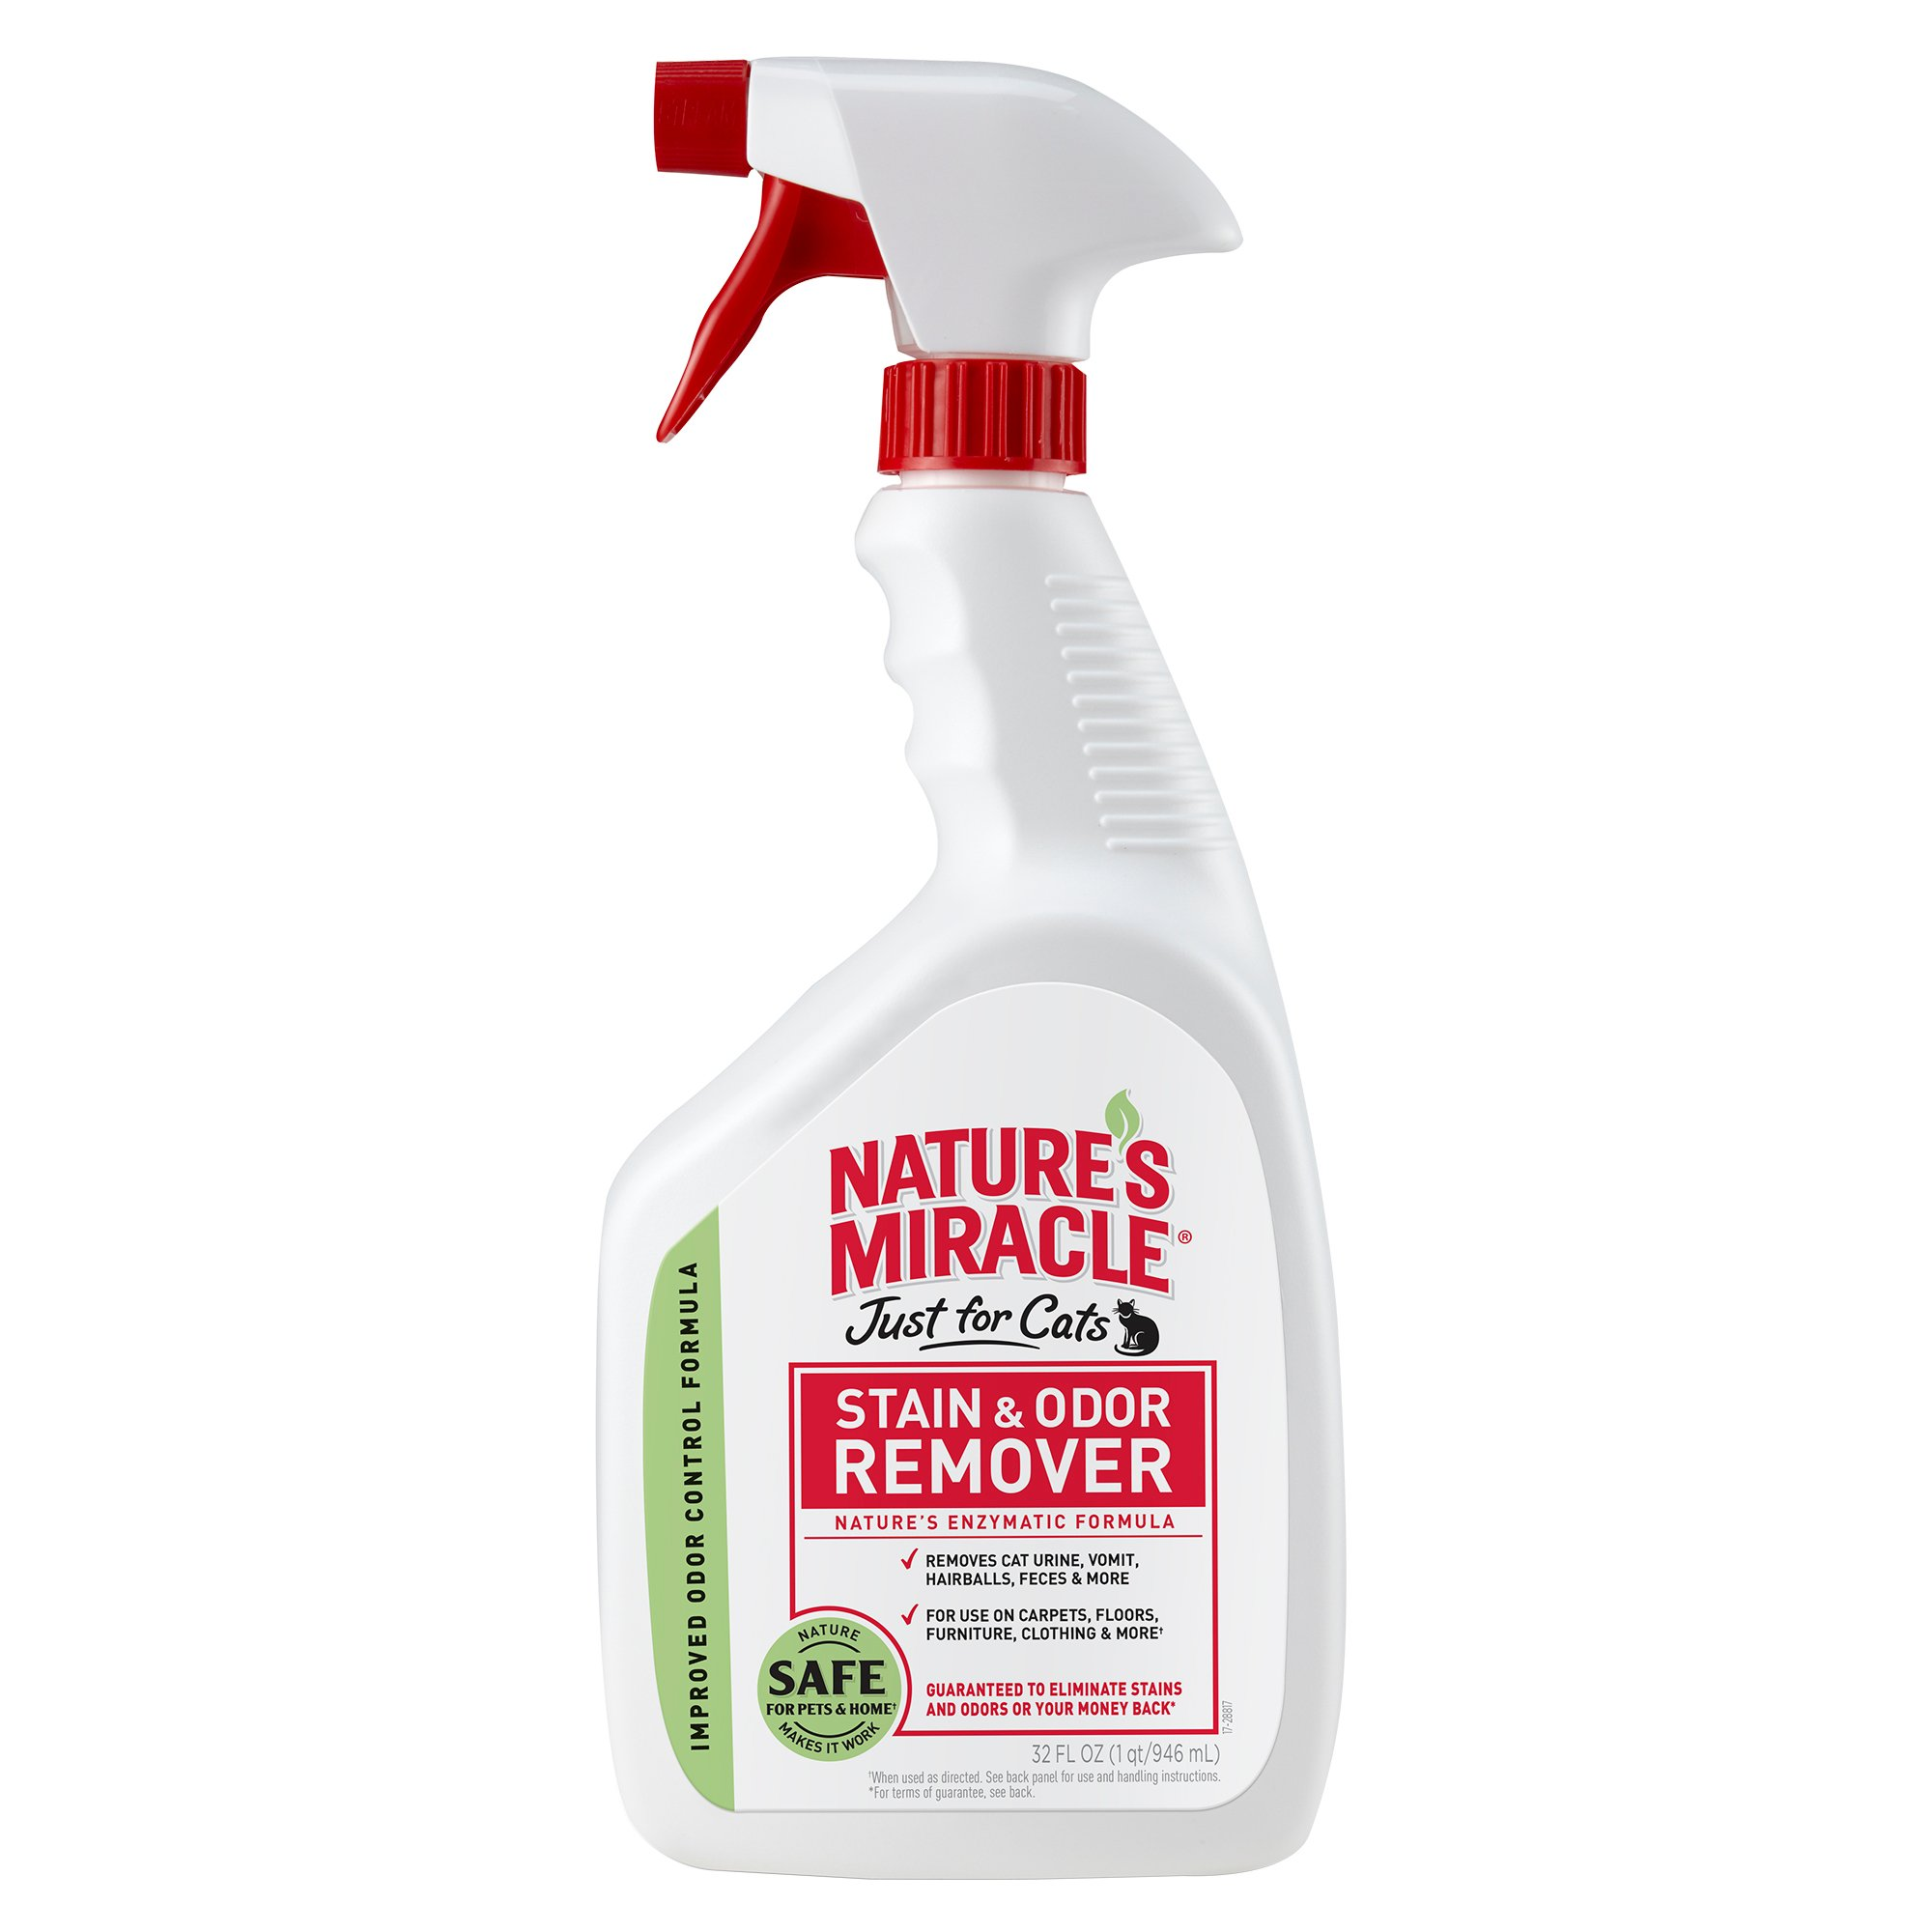 Nature's Miracle Just for Cats Stain and Odor Remover, 32 oz.